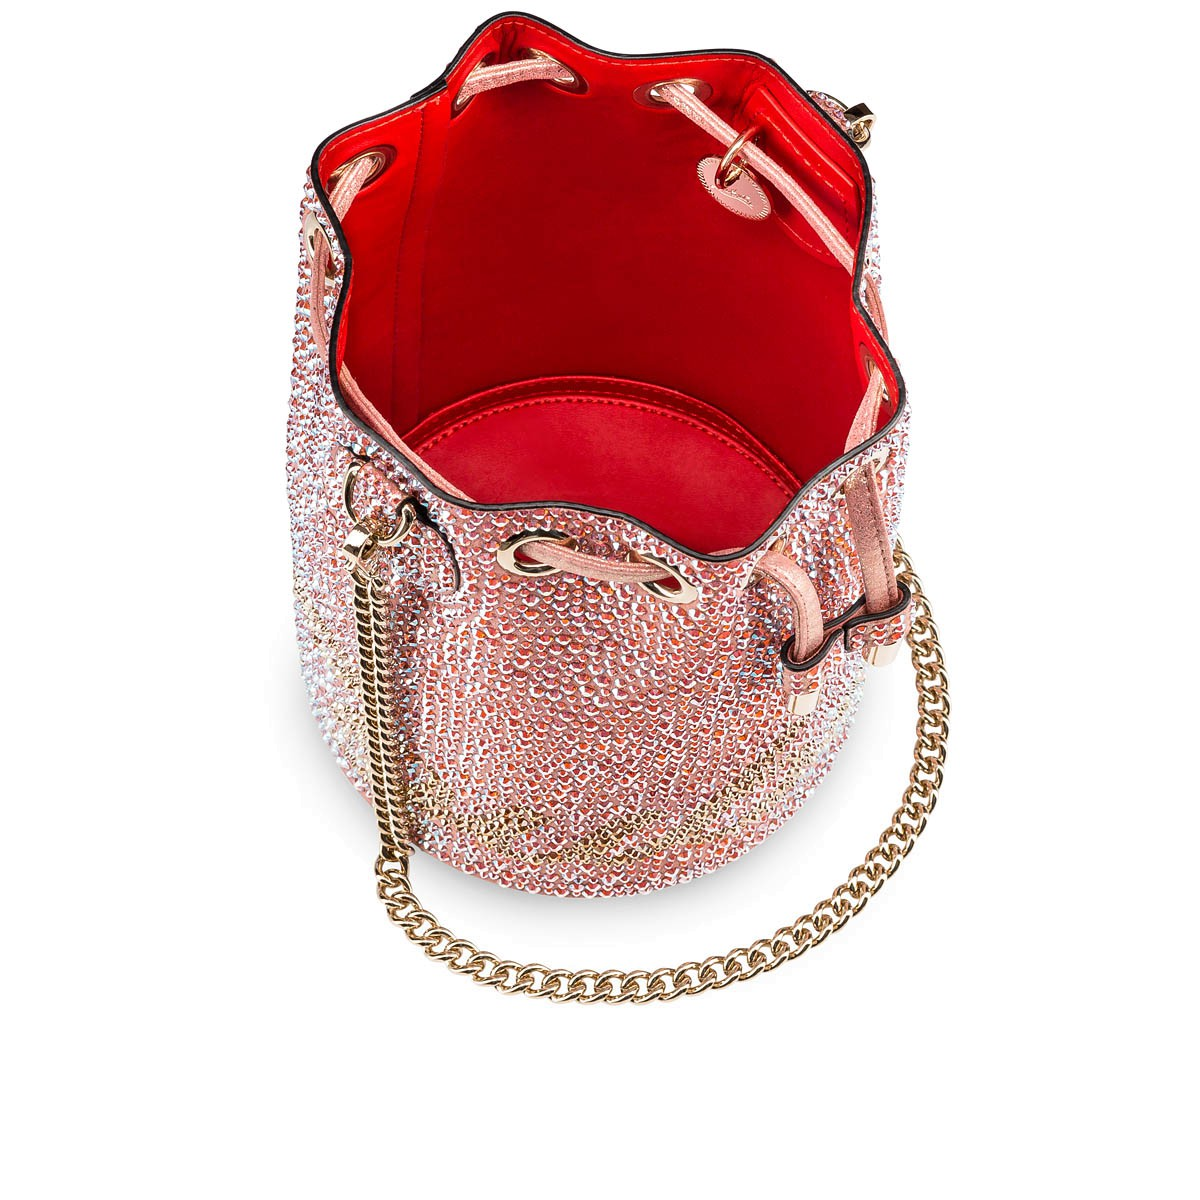 Bags - Marie Jane Bucket Bag - Christian Louboutin